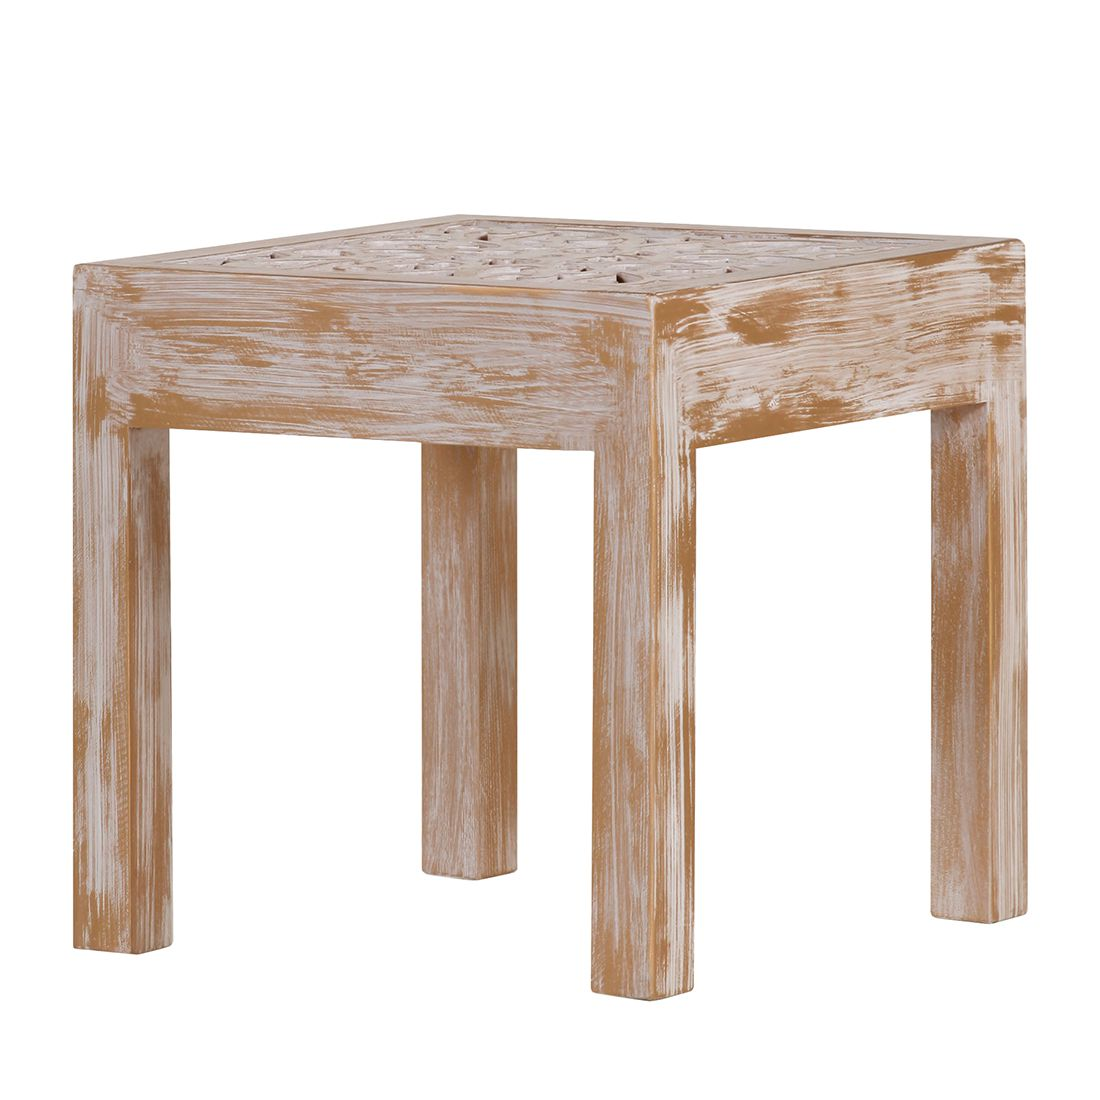 Table basse Chapalasee - Pin massif marron - Teinté et verni, Red Living